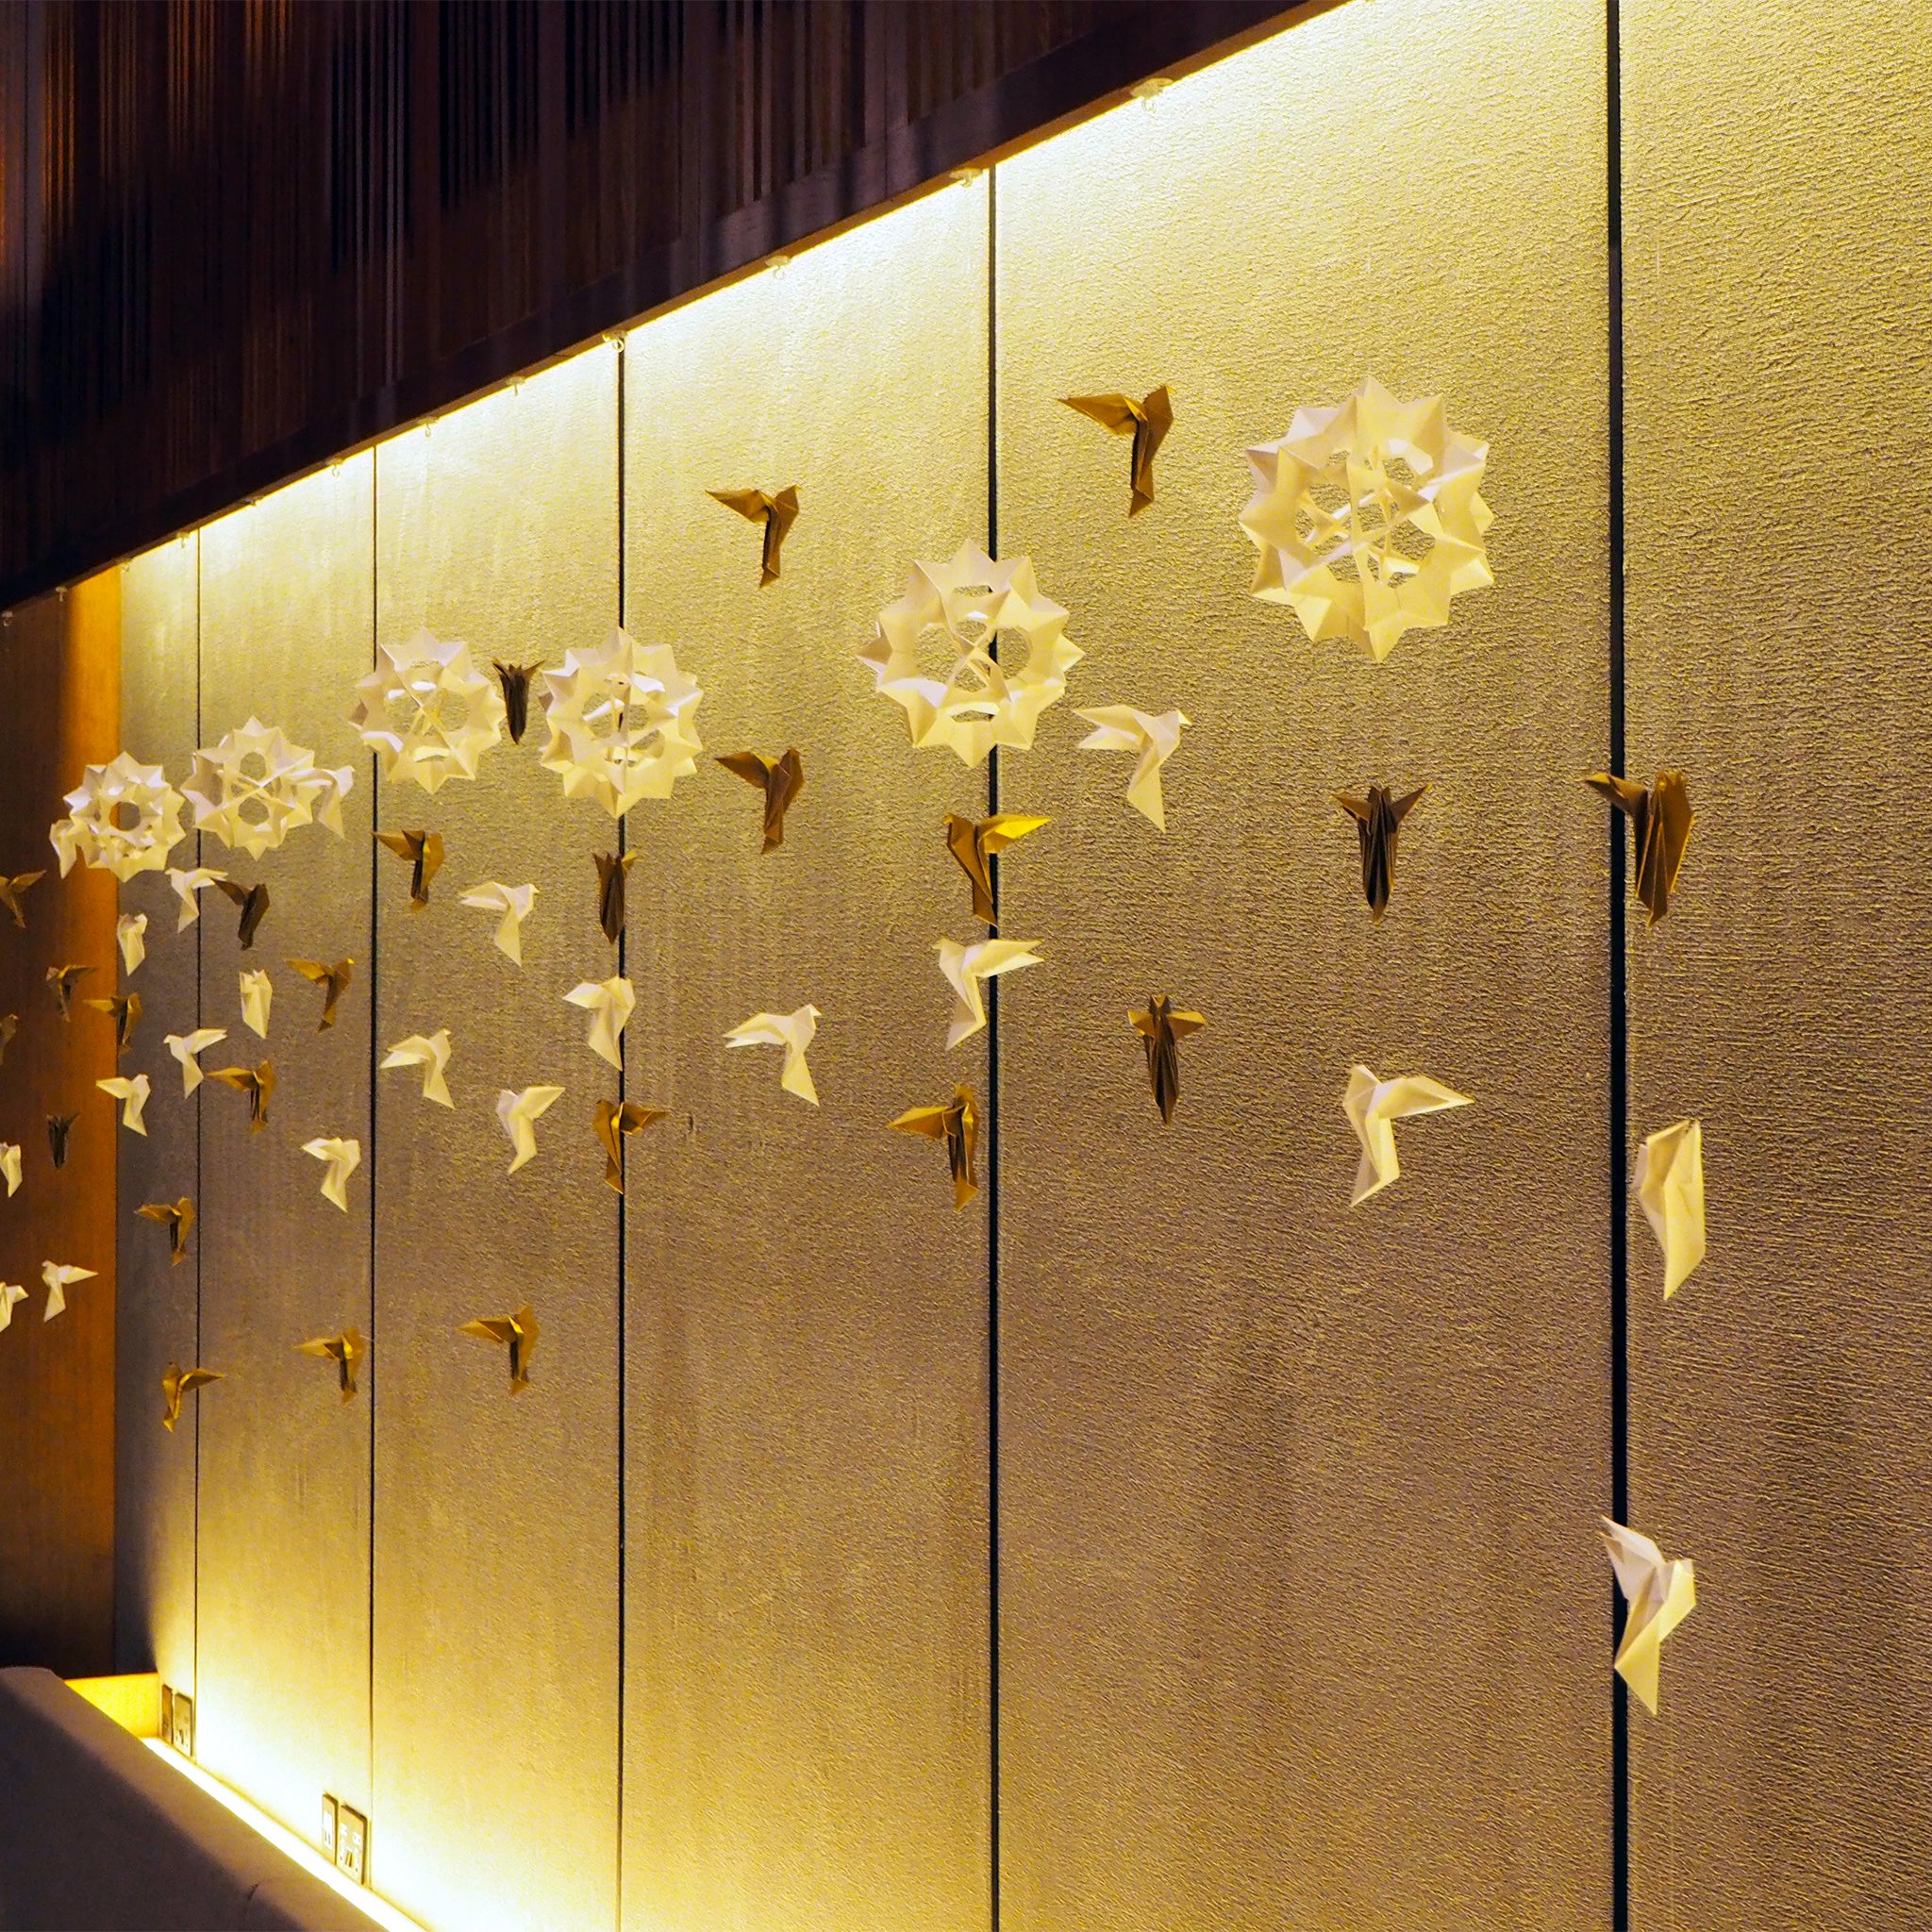 Bespoke hanging origami decoration for business event held at Japanese Hotel in East London paper art installation